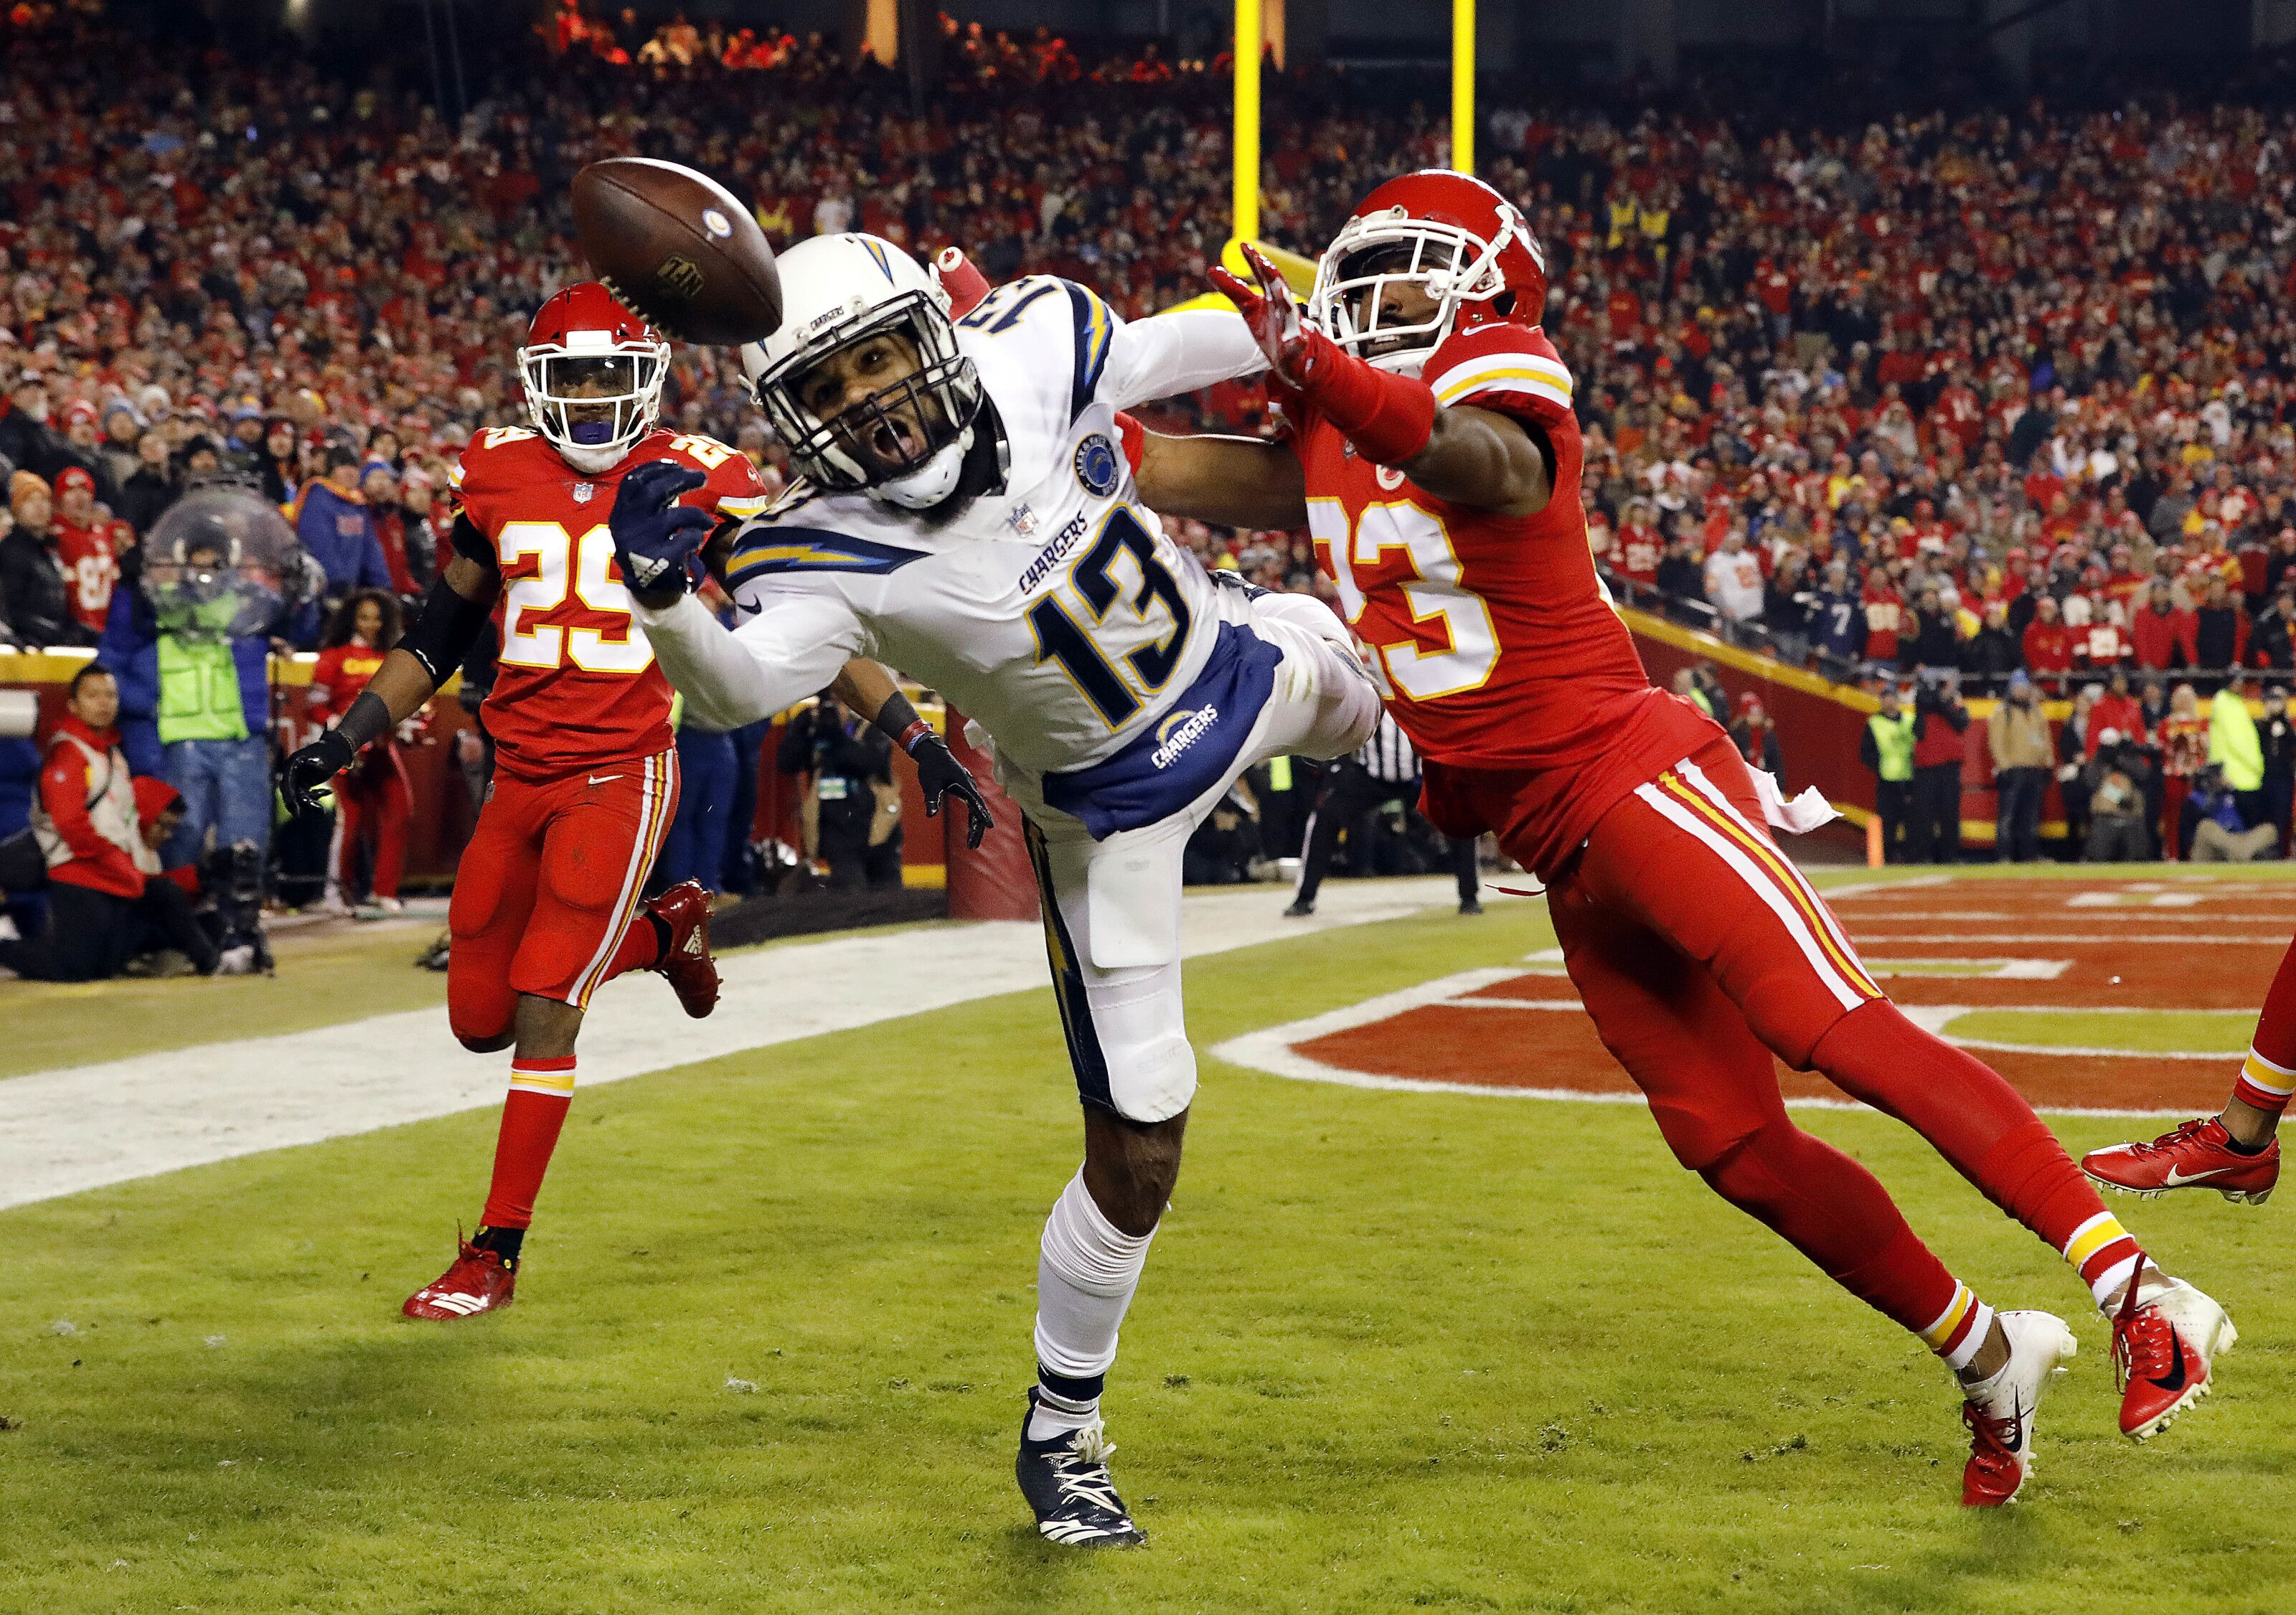 Chiefs cornerback Kendall Fuller has surgery on fractured wrist